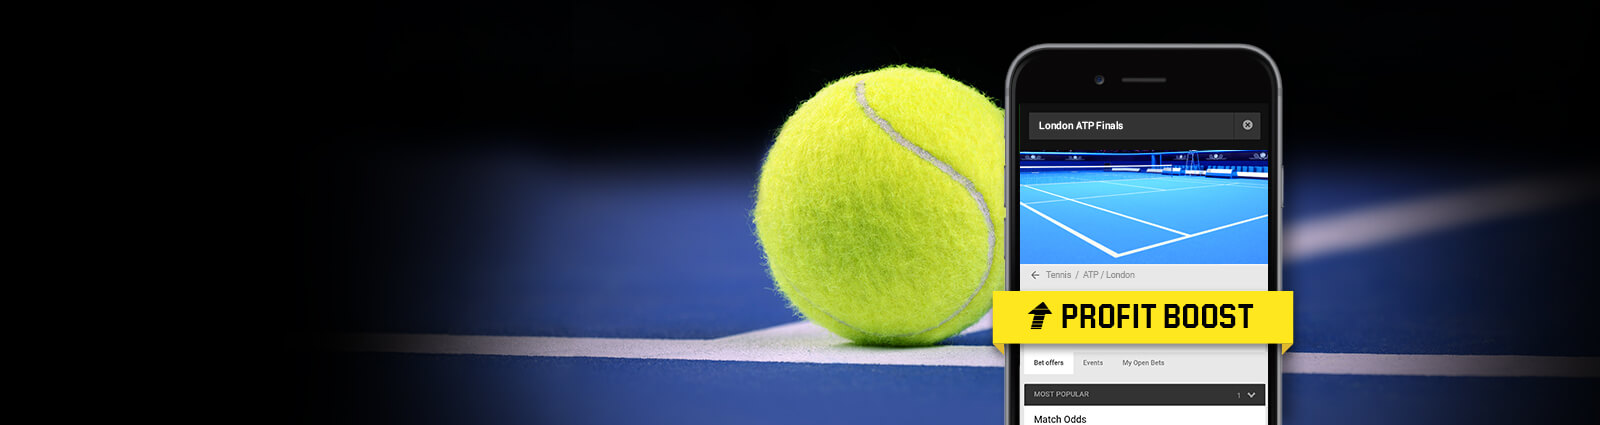 ATP Finals: Quoten-Boosts